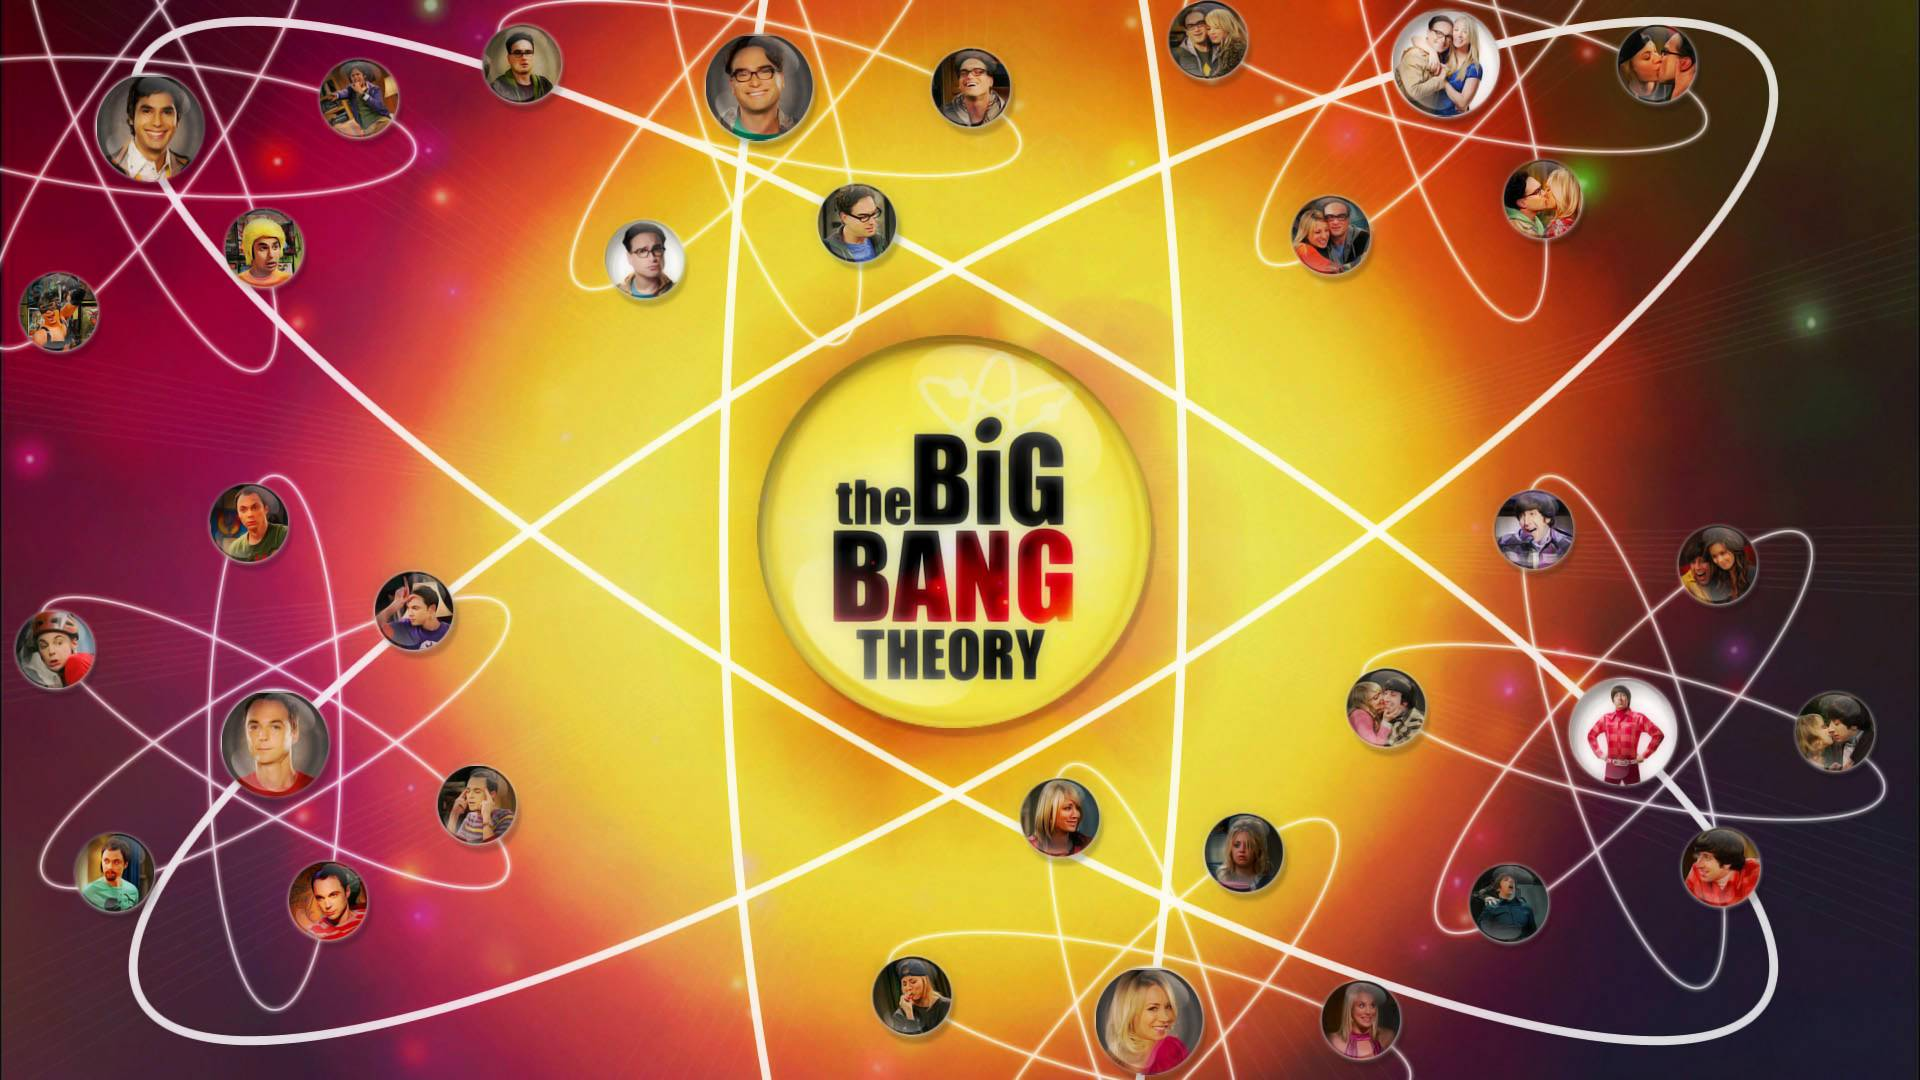 The Big Bang Theory Computer Wallpapers, Desktop Backgrounds